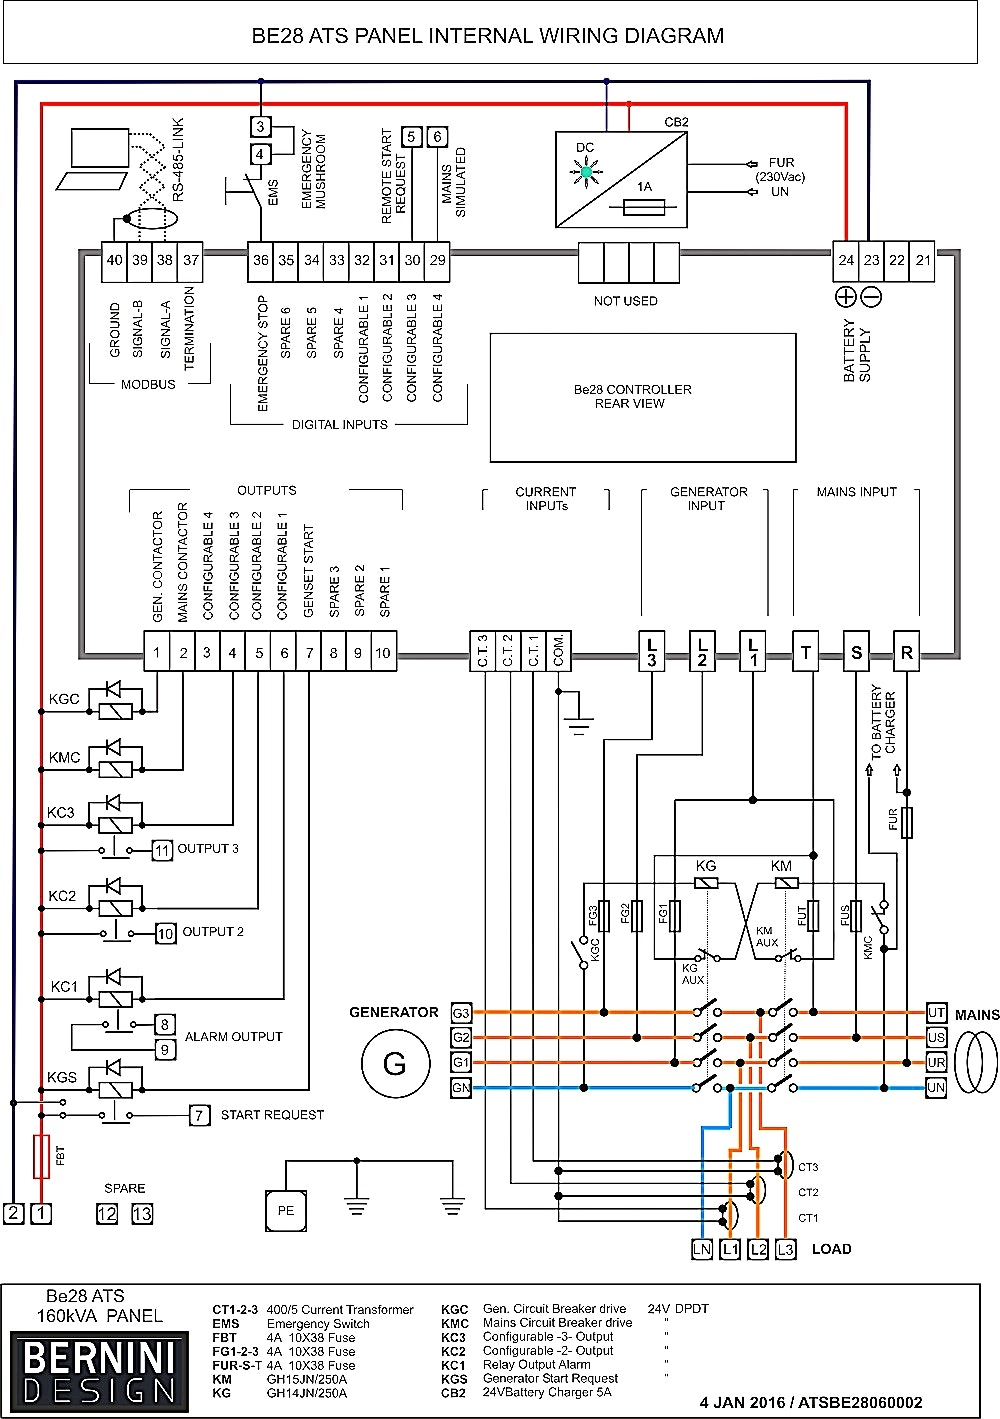 transfer switch wiring diagram Download-generac ats wiring diagram Collection Generac Automatic Transfer Switch Wiring Diagram Simple Design Between Solargenerator DOWNLOAD Wiring Diagram 20-o